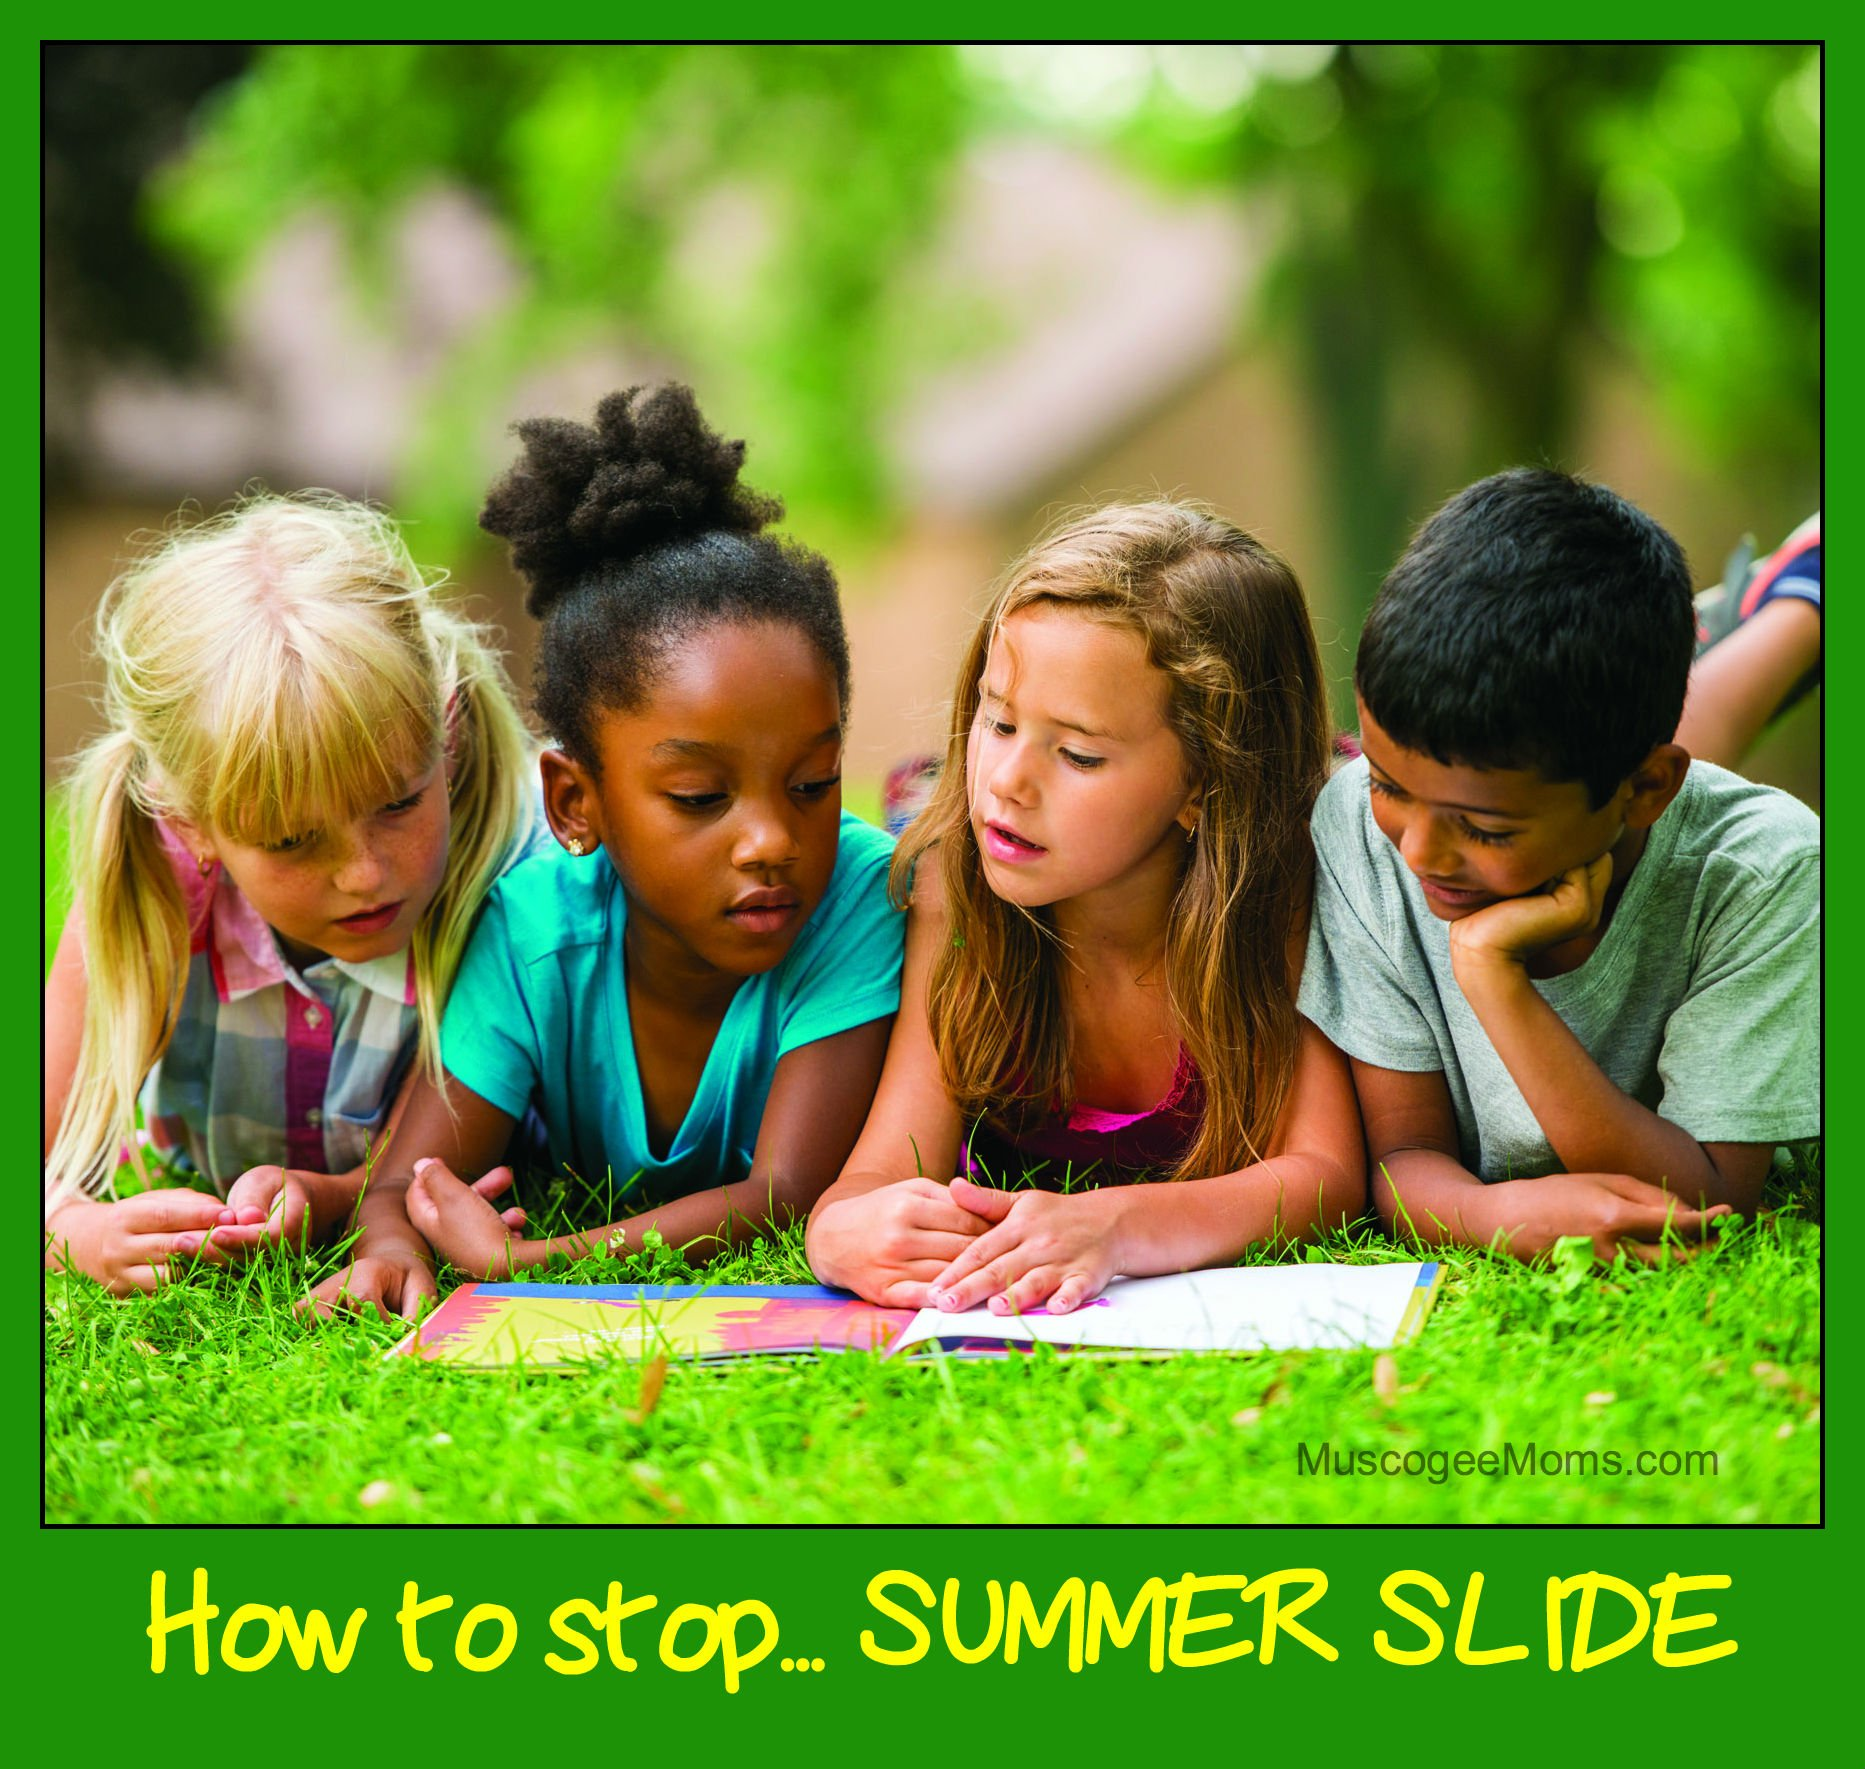 6 Tips to Stop the Summer Slide